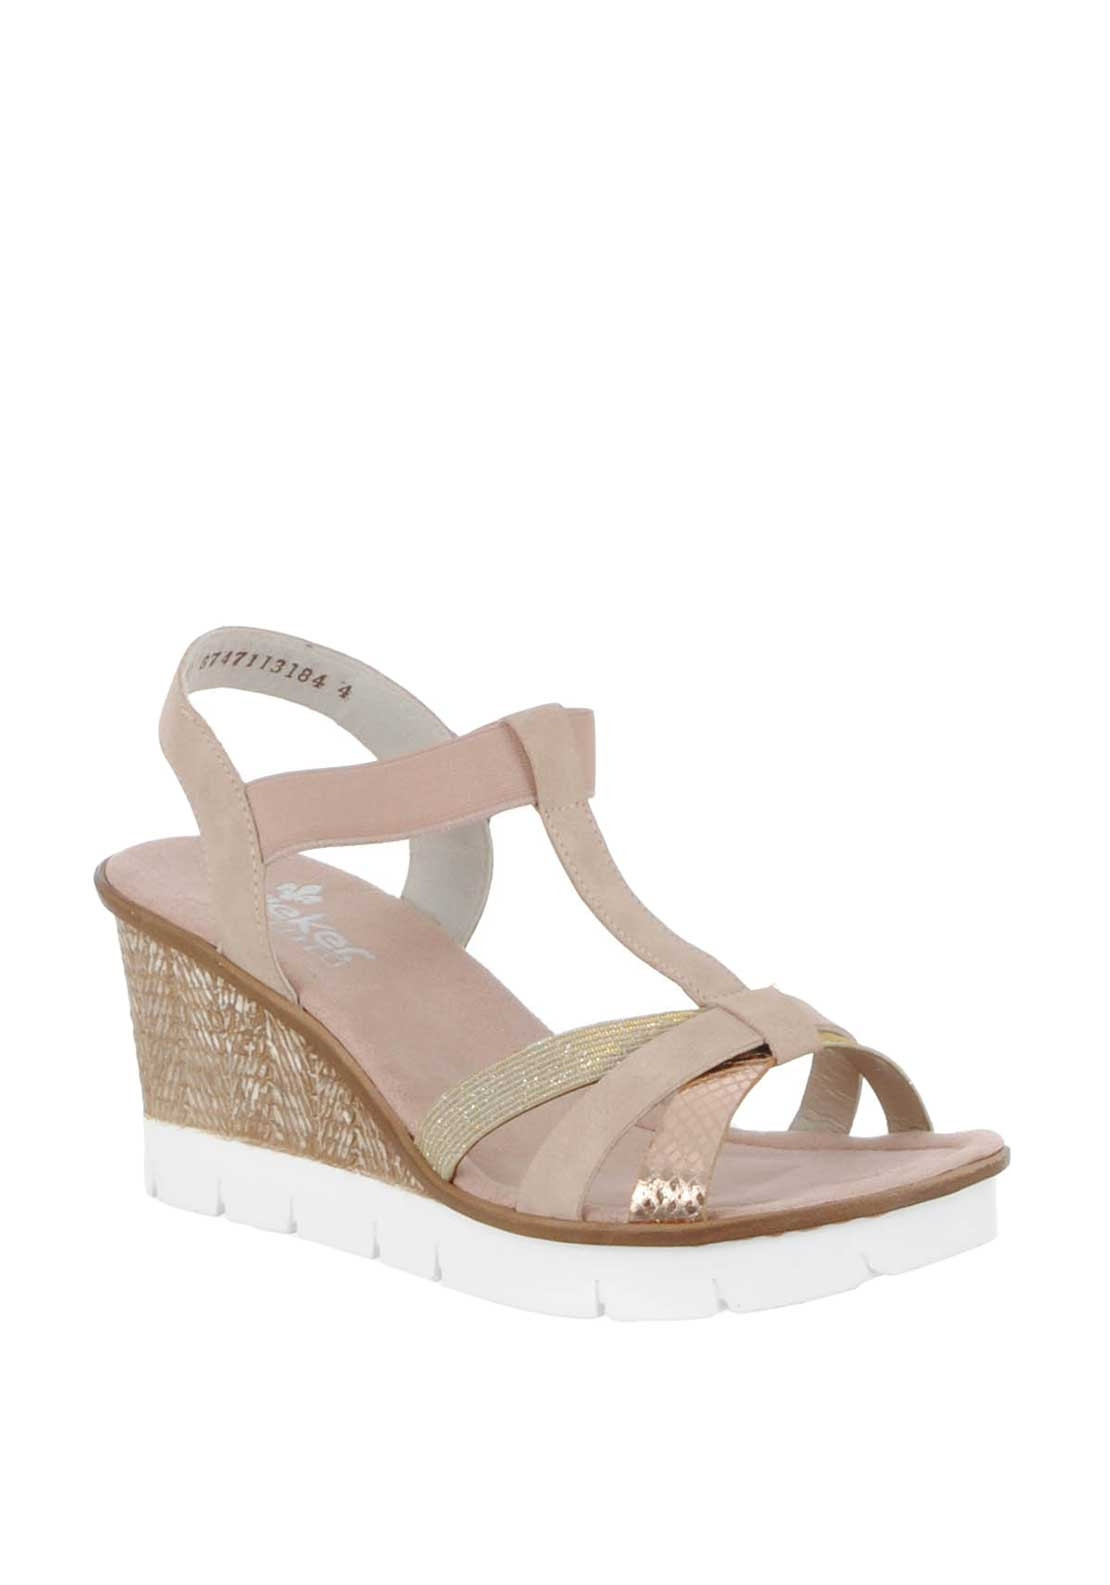 8427b39260a0 Rieker Womens Metallic Strap Wedged Sandals